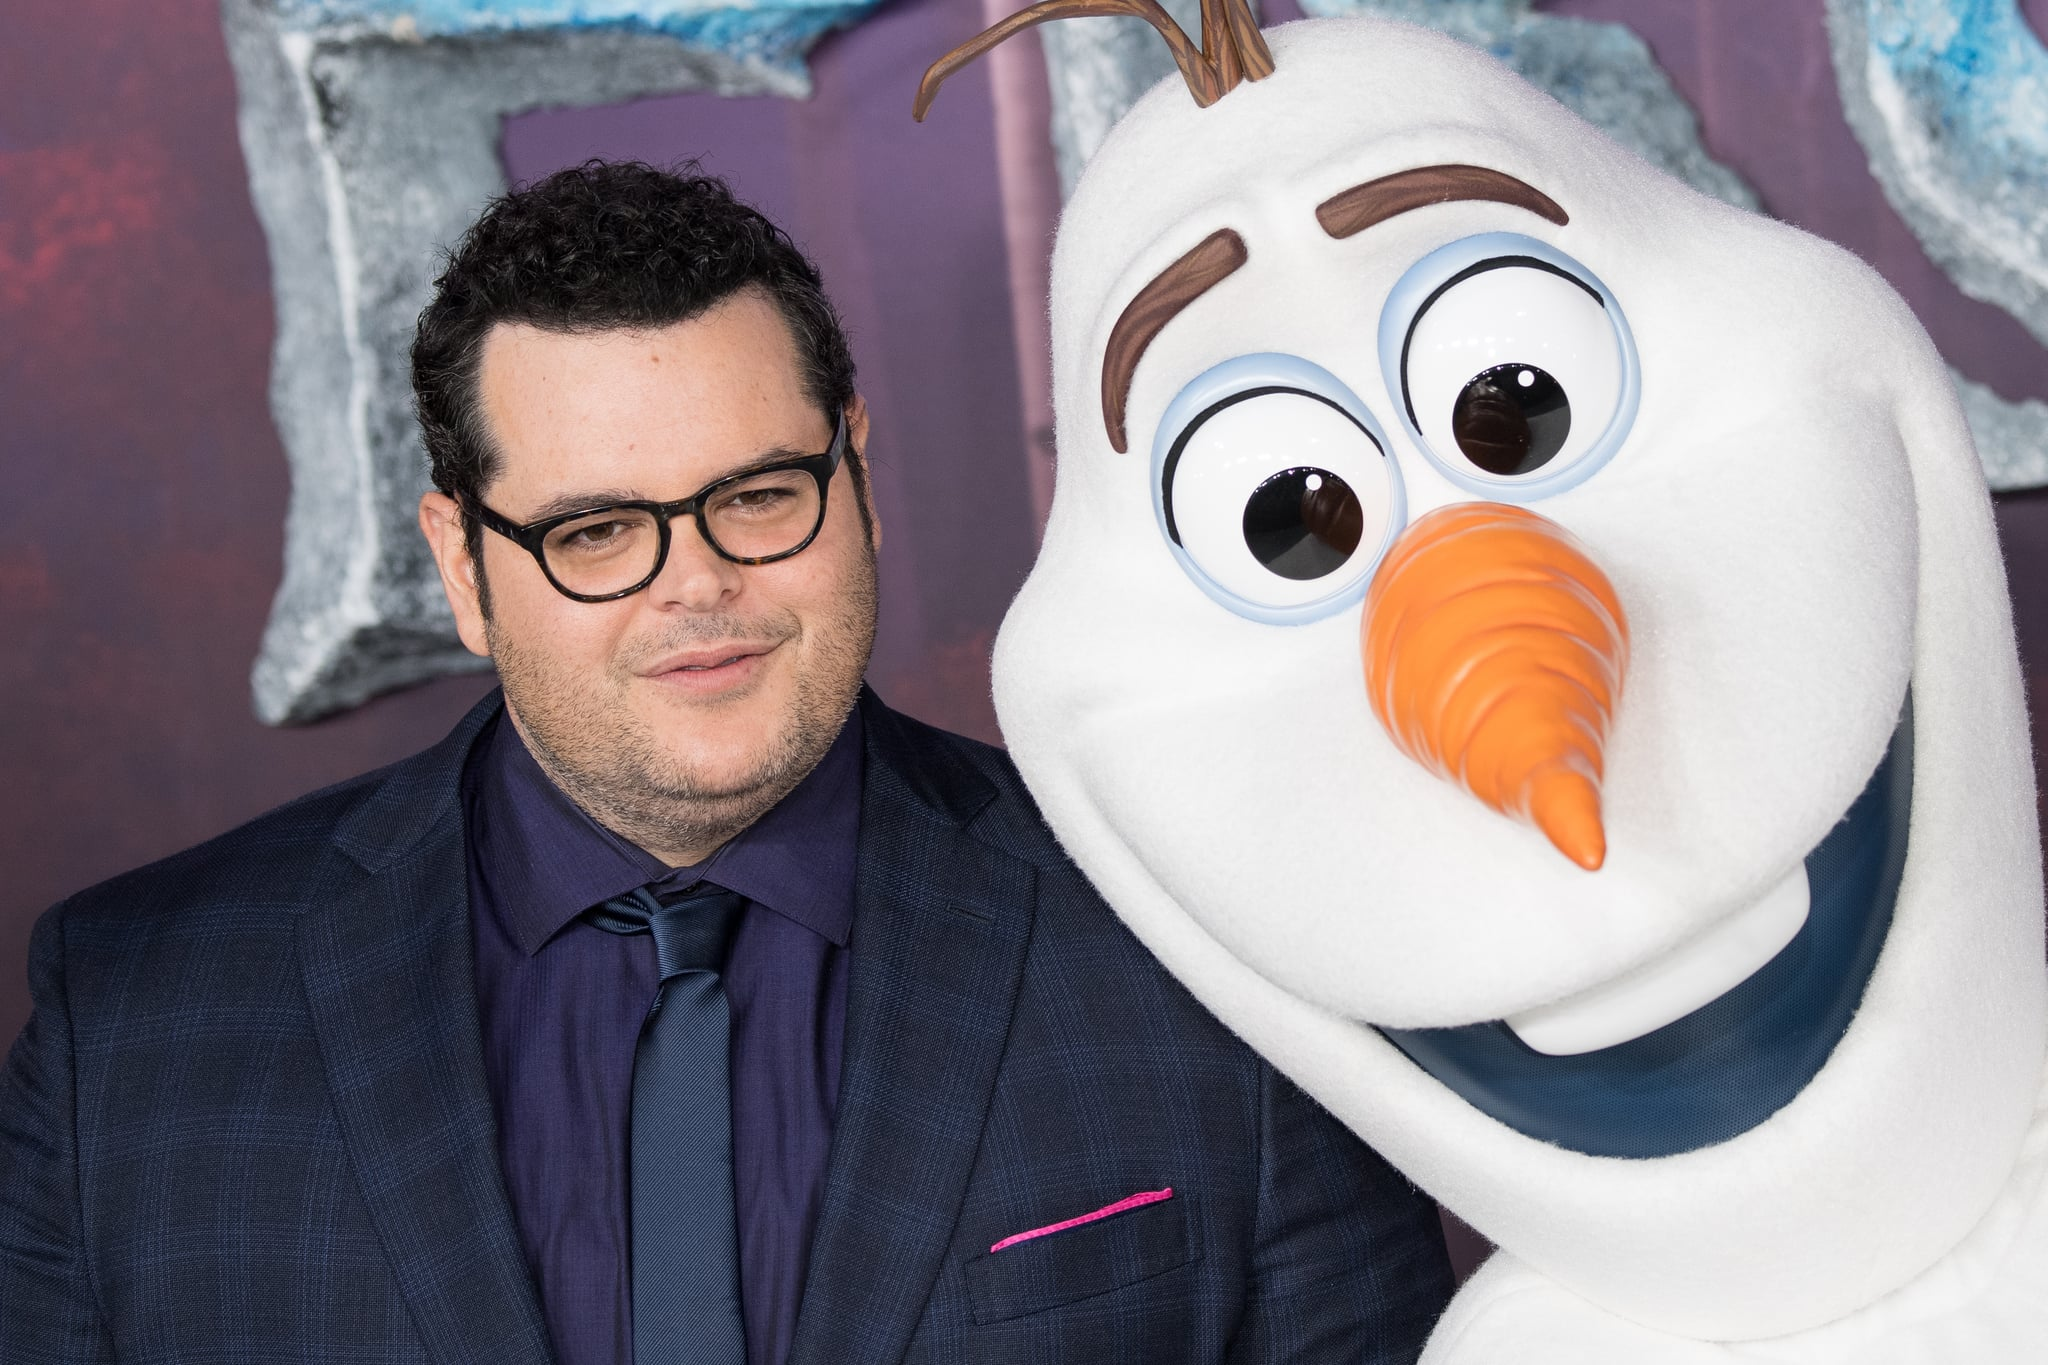 LONDON, ENGLAND - NOVEMBER 17: Josh Gad attends the